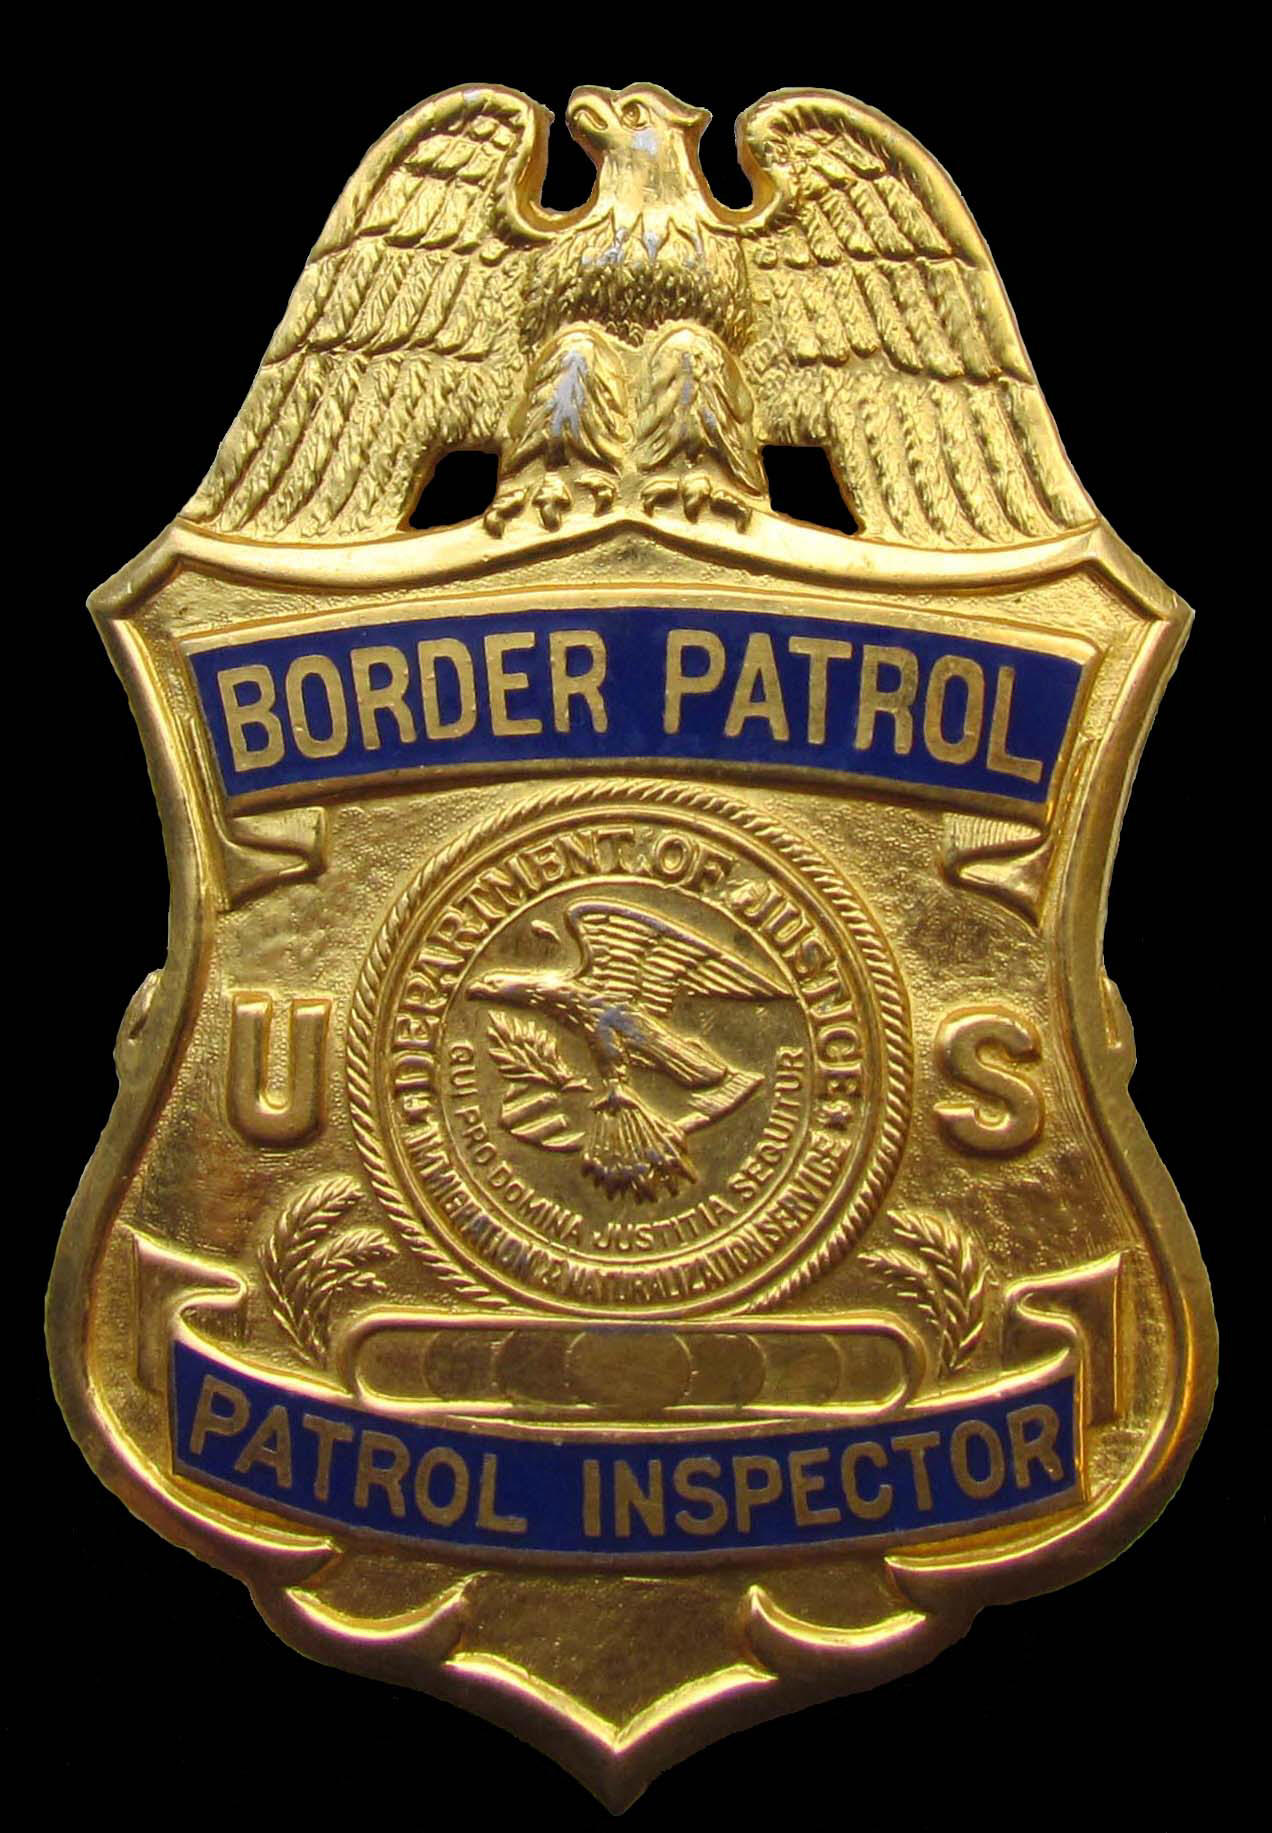 U.S. Border Patrol Patrol Inspector badge